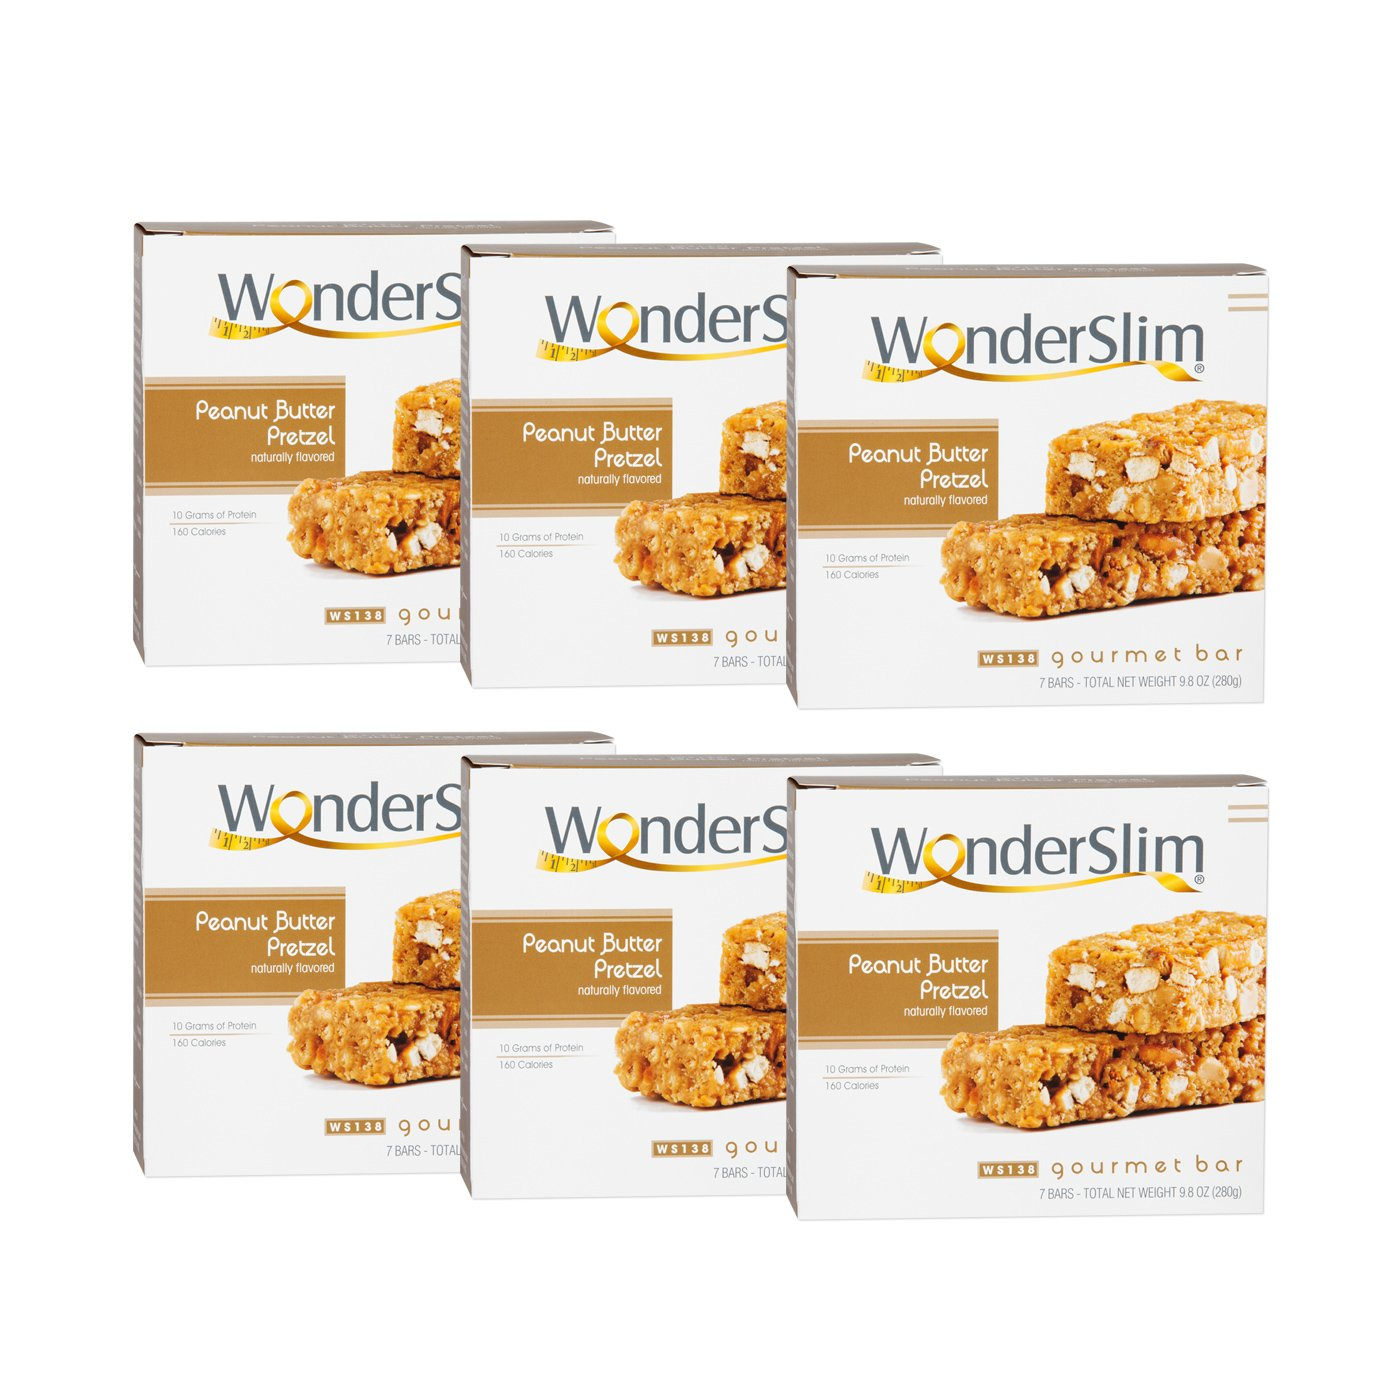 WonderSlim Gourmet High Protein Bar/Diet Bars with 10g Protein - Trans Fat Free, Cholesterol Free, Peanut Butter Pretzel - 6 Box Value-Pack (Save 10%)